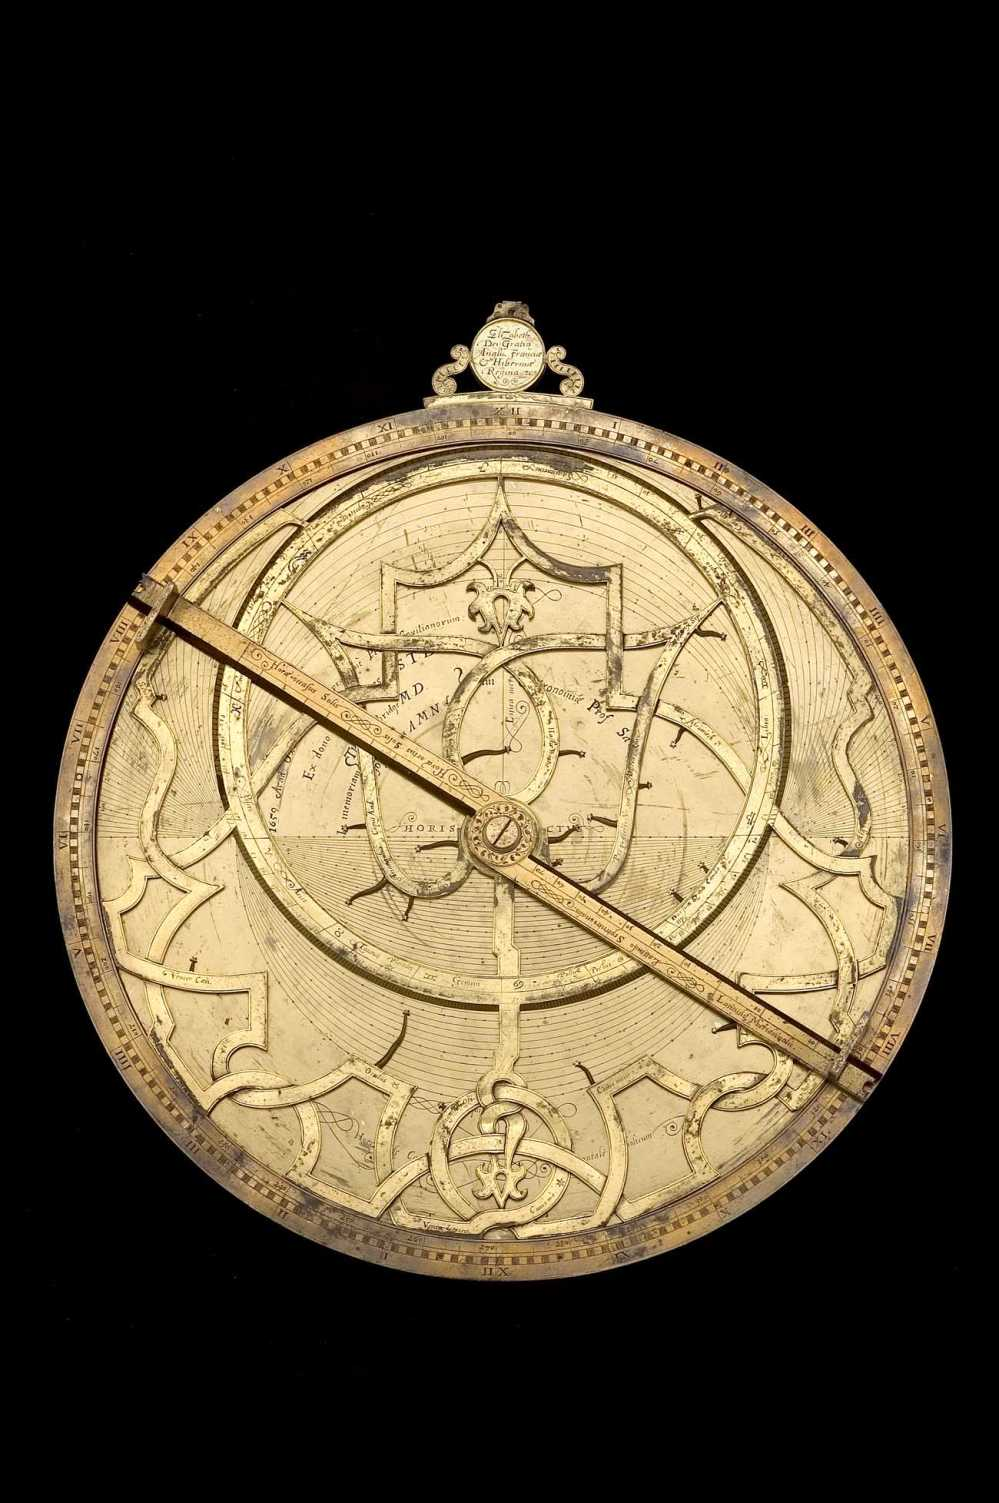 preview image for Astrolabe, by Thomas Gemini for Queen Elizabeth I, London, 1559